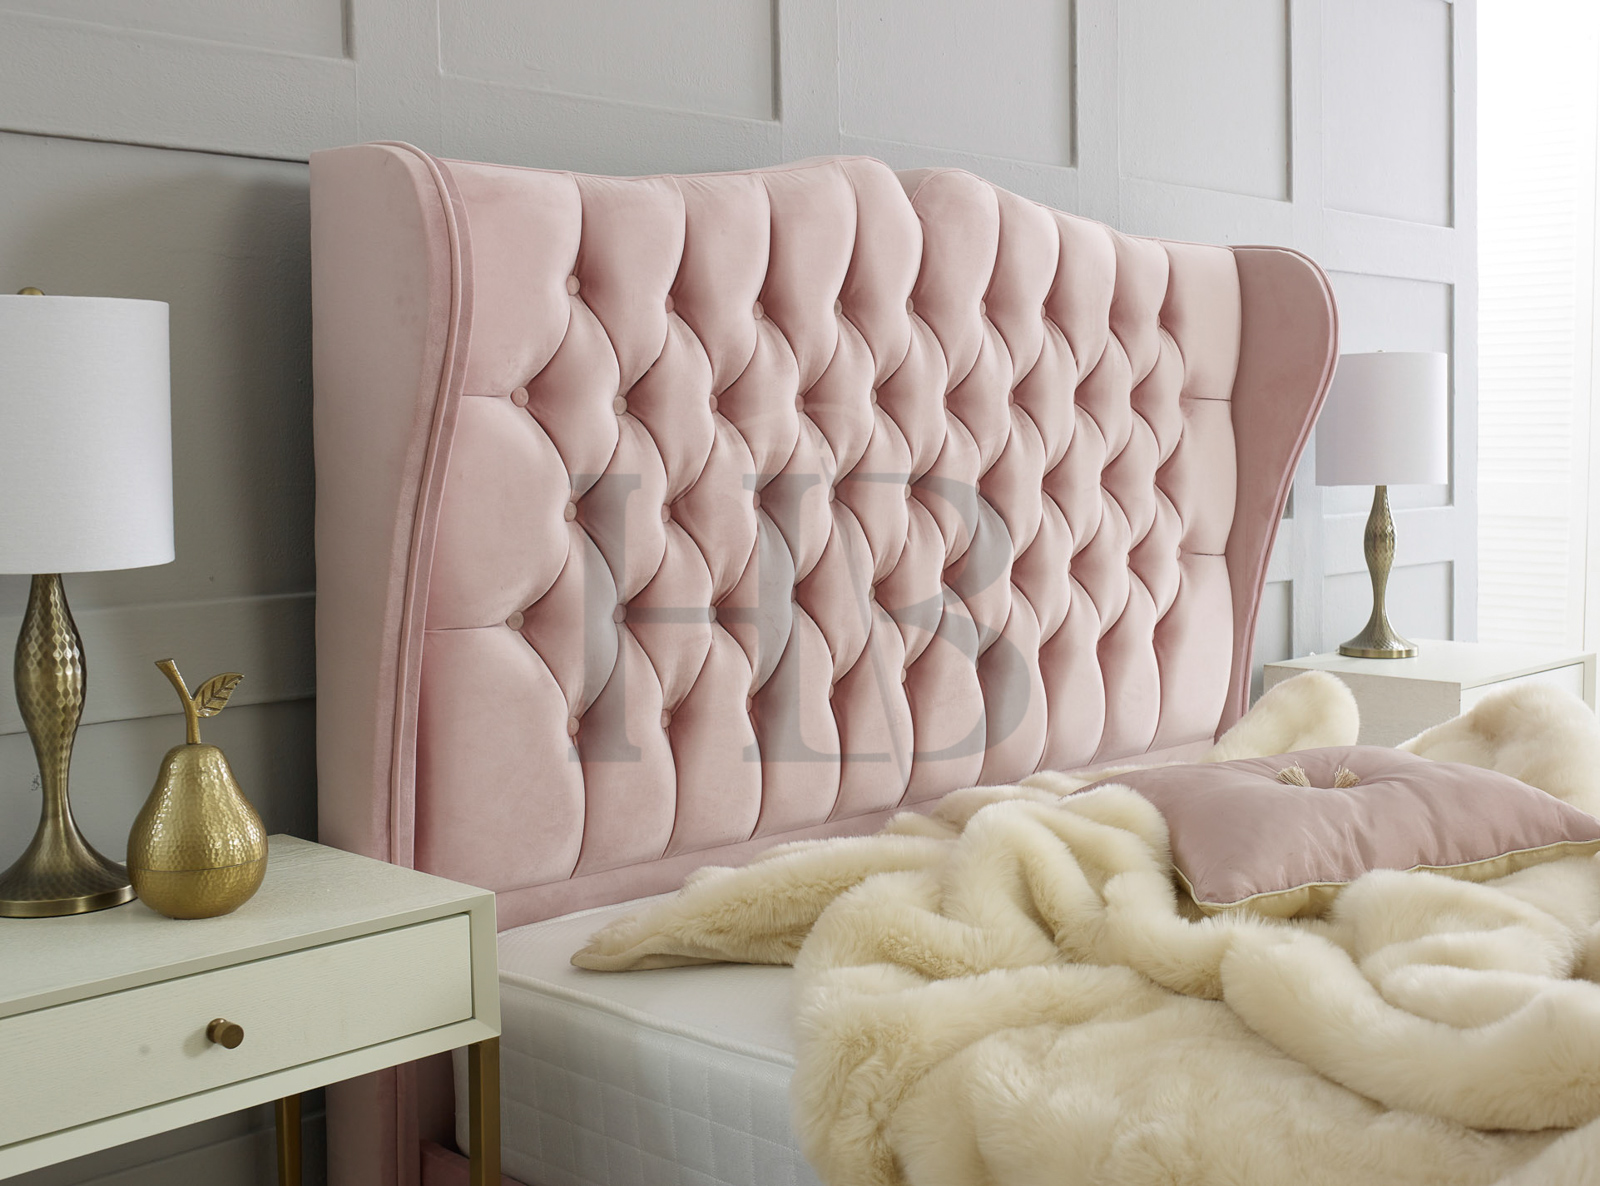 How to clean your upholstered bed